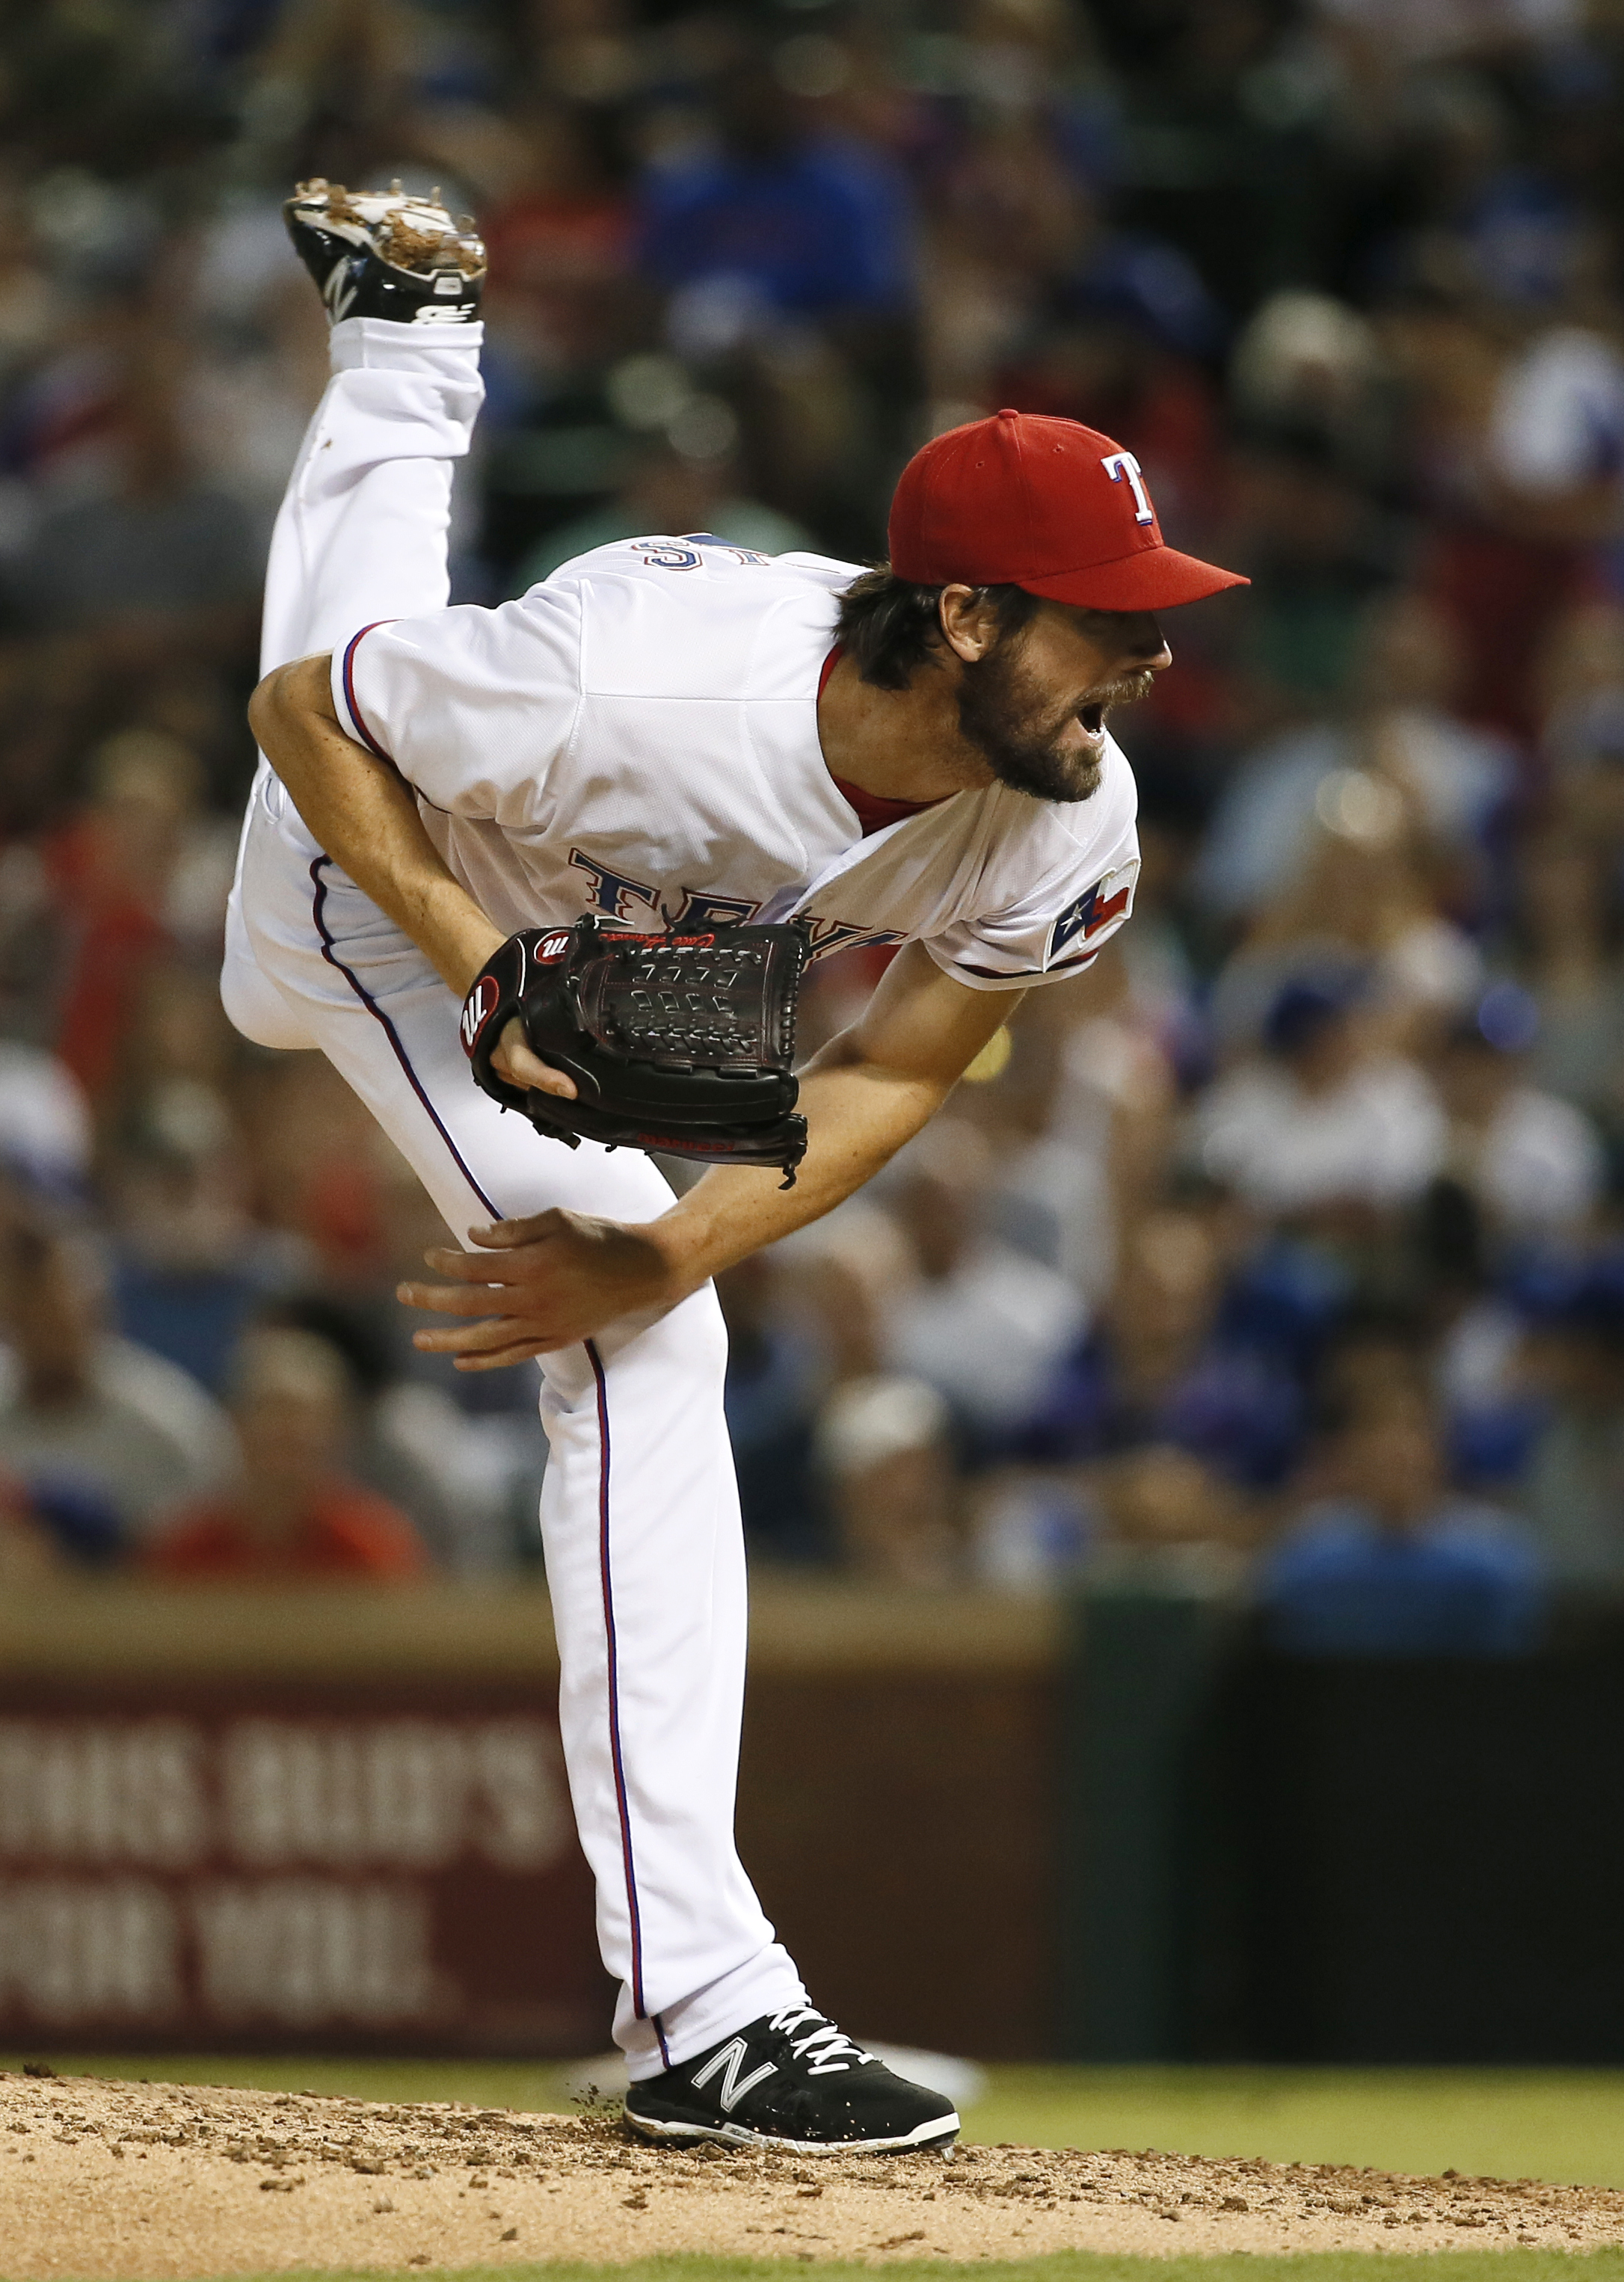 Texas Rangers starting pitcher Cole Hamels works against the Baltimore Orioles in the sixth inning of a baseball game Friday, Aug. 28, 2015, in Arlington, Texas. (AP Photo/Tony Gutierrez)